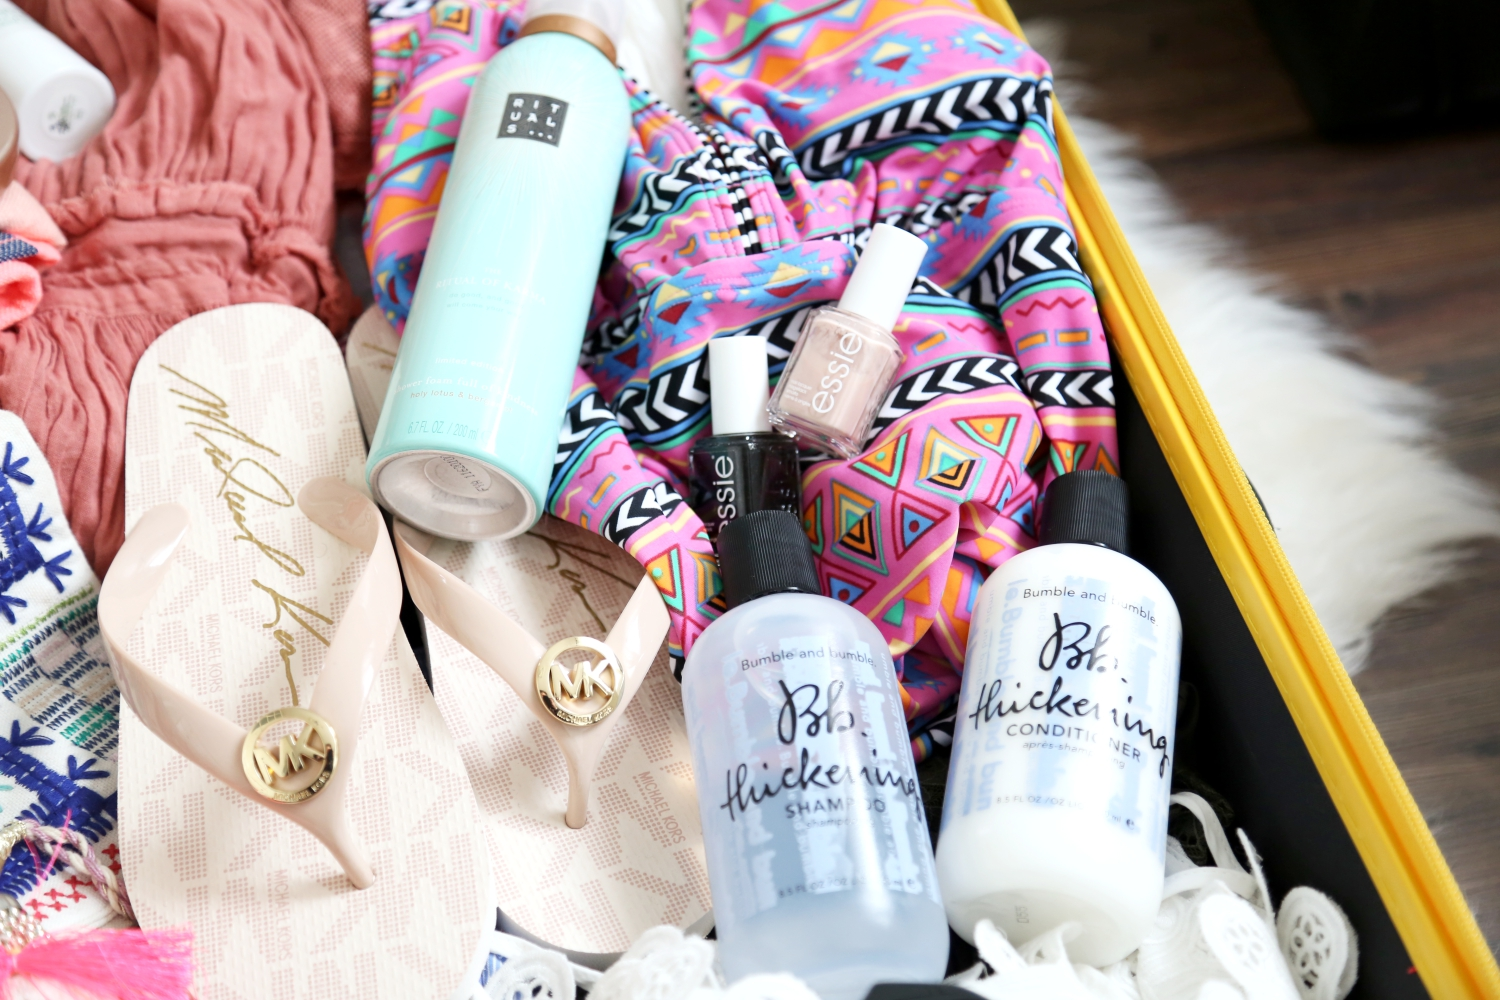 packing-michaelkors-fli-flops-beauty-stuff-vacation